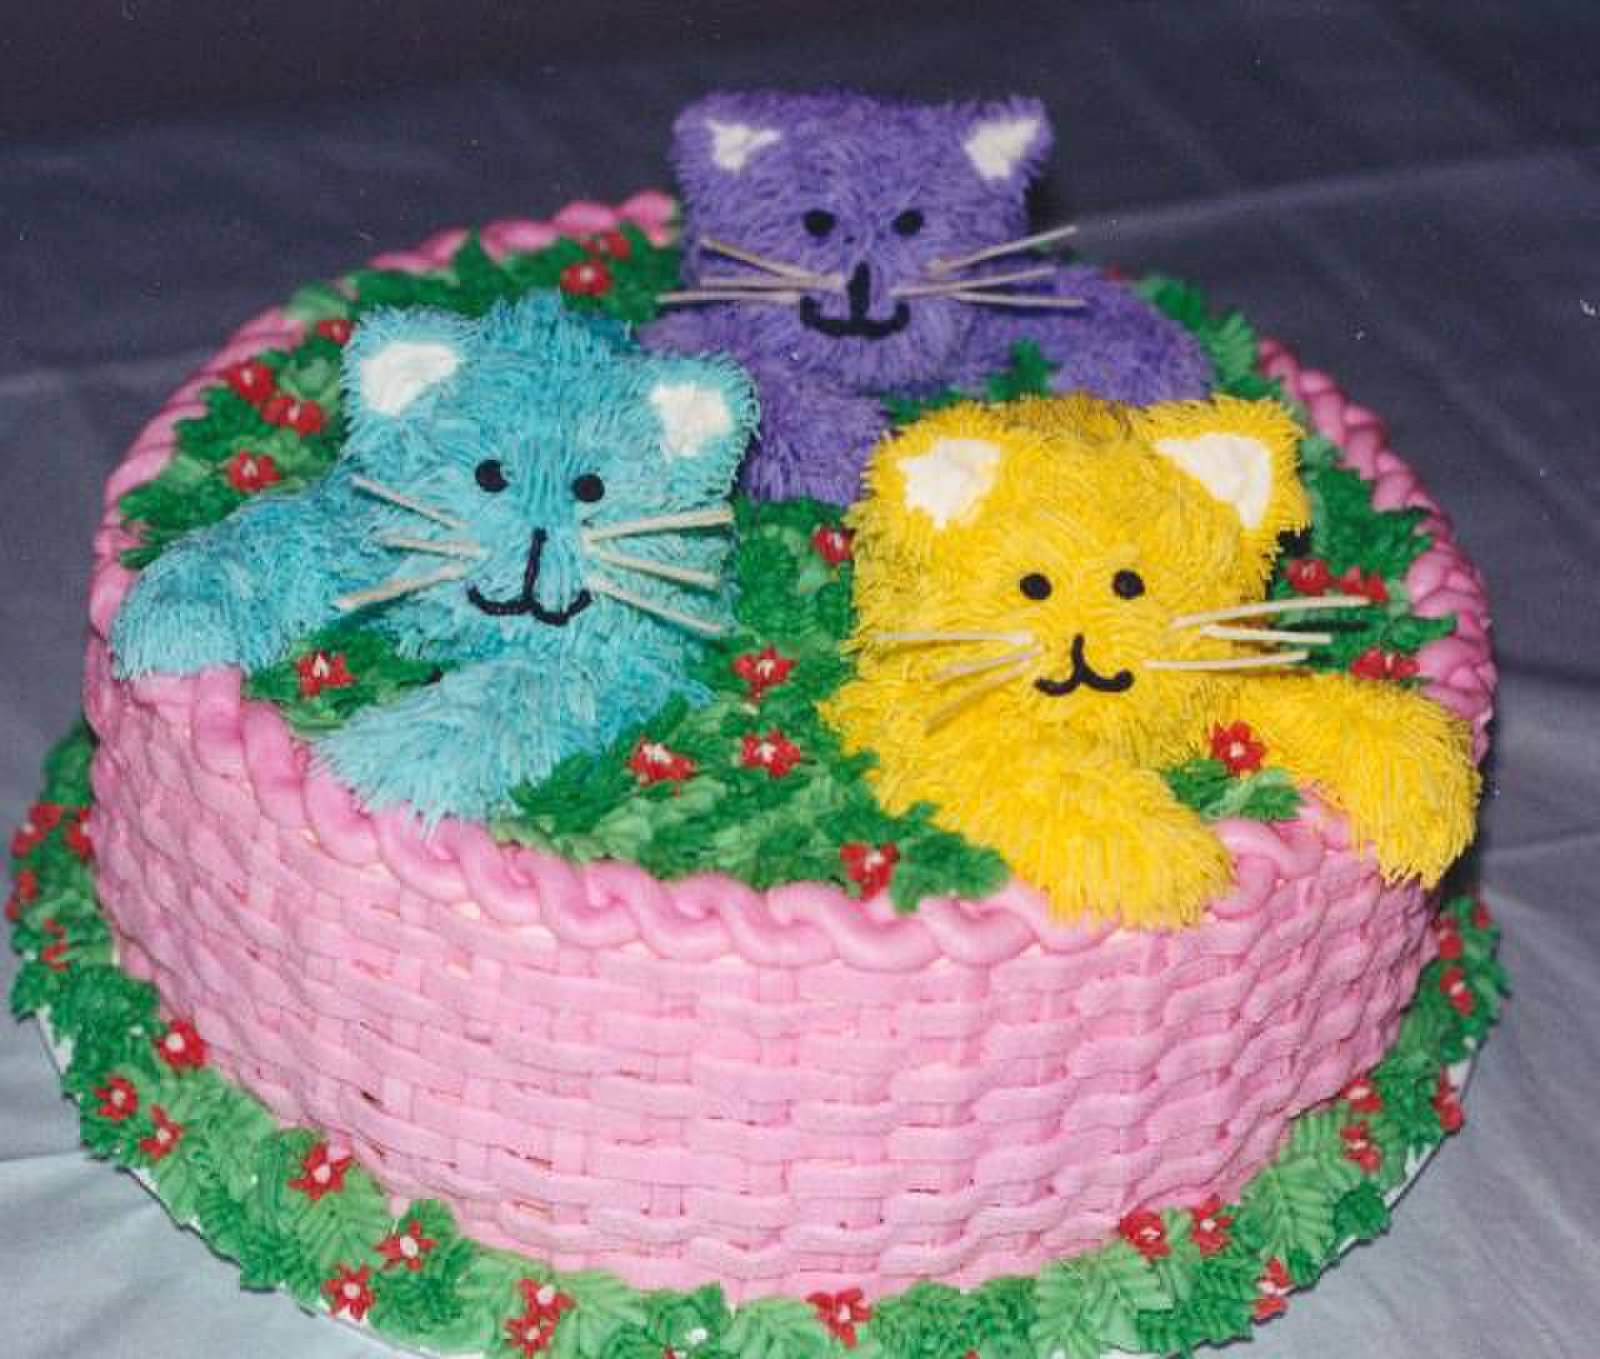 20 Pretty Awesome Kiddie Birthday Cakes - Page 7 of 20